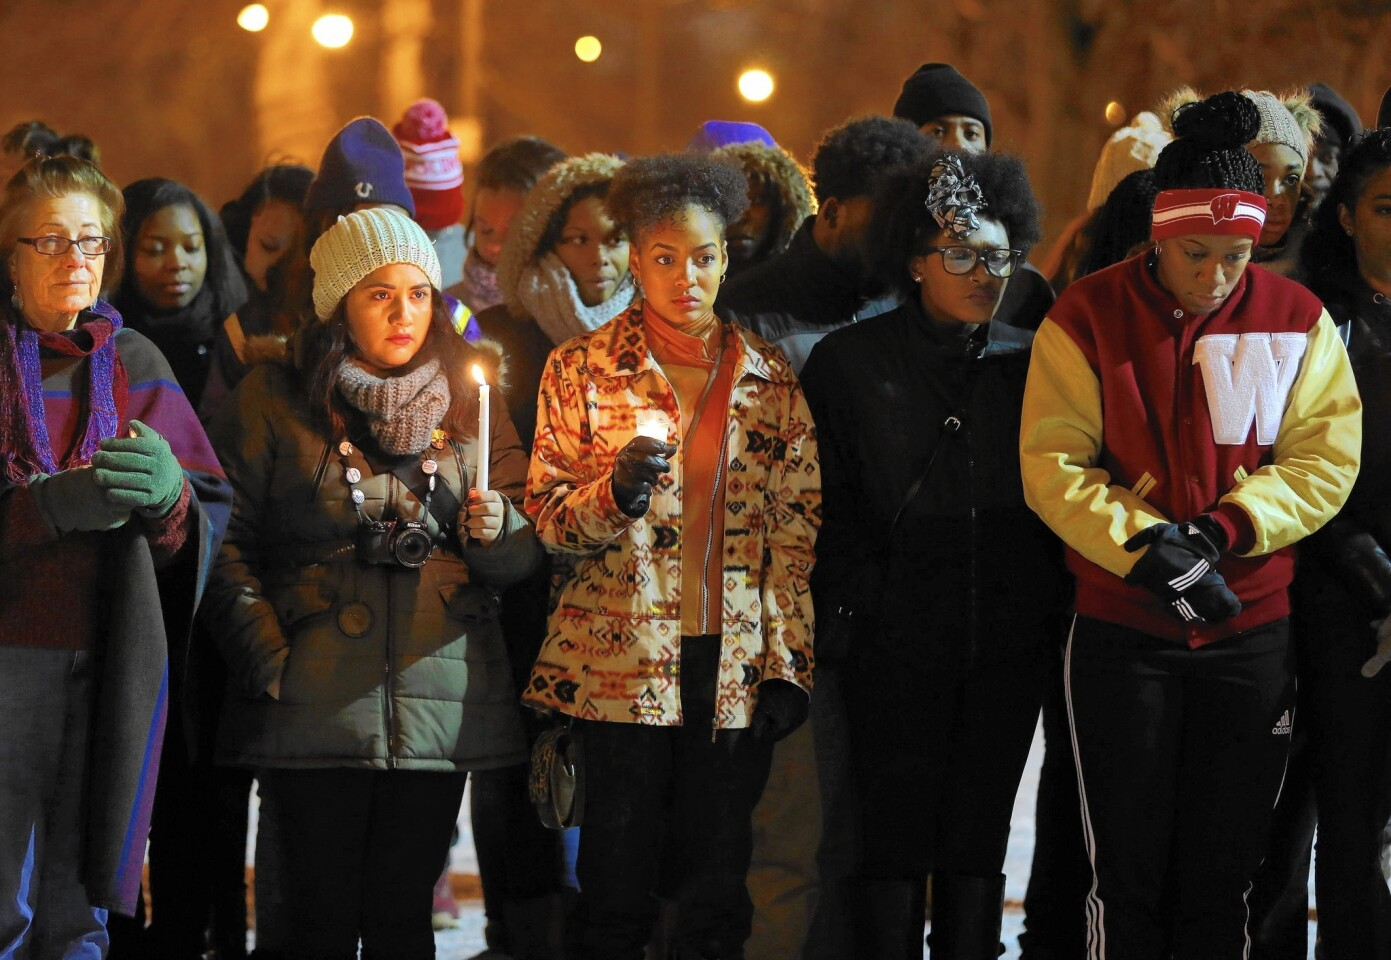 People gather to honor Quintonio LeGrier near Gwendolyn Brooks College Preparatory Academy in Chicago on Dec. 29, 2015. LeGrier, a graduate of the South Side school, was fatally shot by Chicago police responding to a domestic disturbance call Dec. 26 at the West Garfield Park apartment building where LeGrier lived. Police also fatally shot neighbor Bettie Jones, accidentally, who was a mother of five.